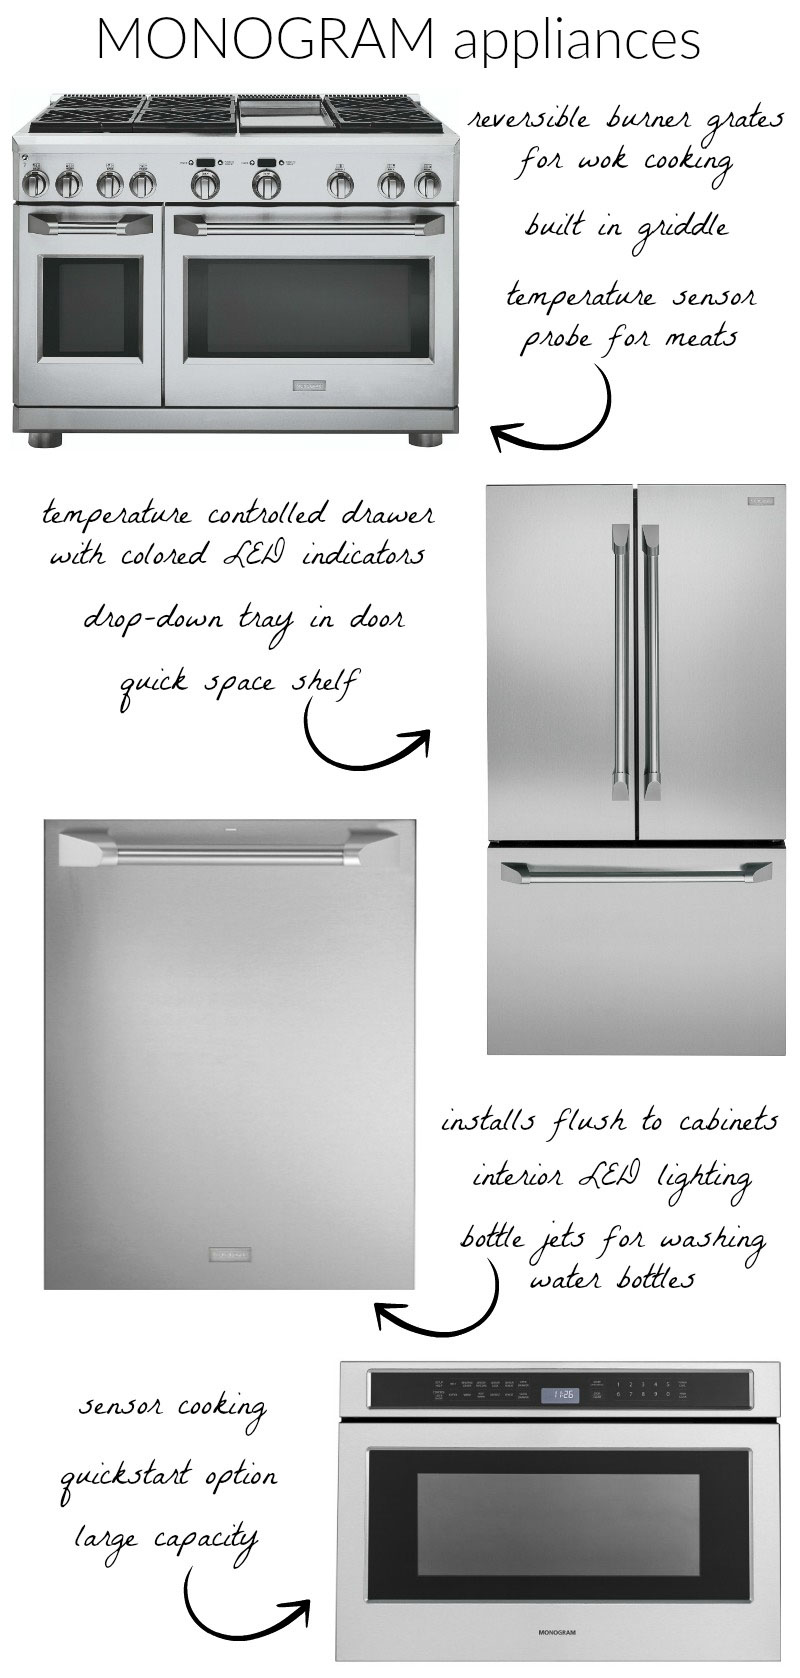 The best kitchen appliances! The perfect combination of beauty and functionality - love Monogram!